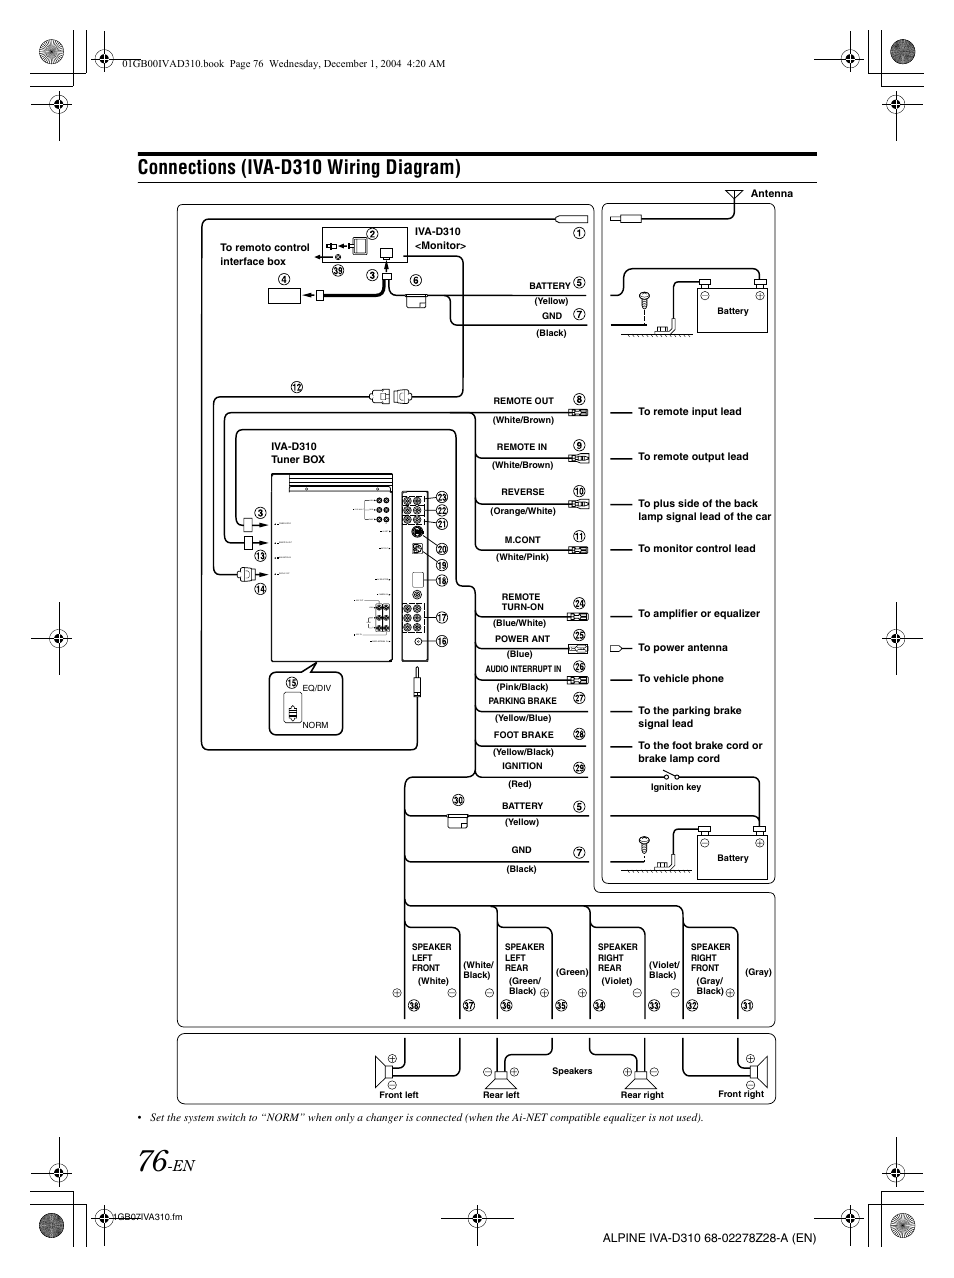 Connections (iva-d310 wiring diagram) | Alpine IVA-D310 User Manual | Page  78 / 253